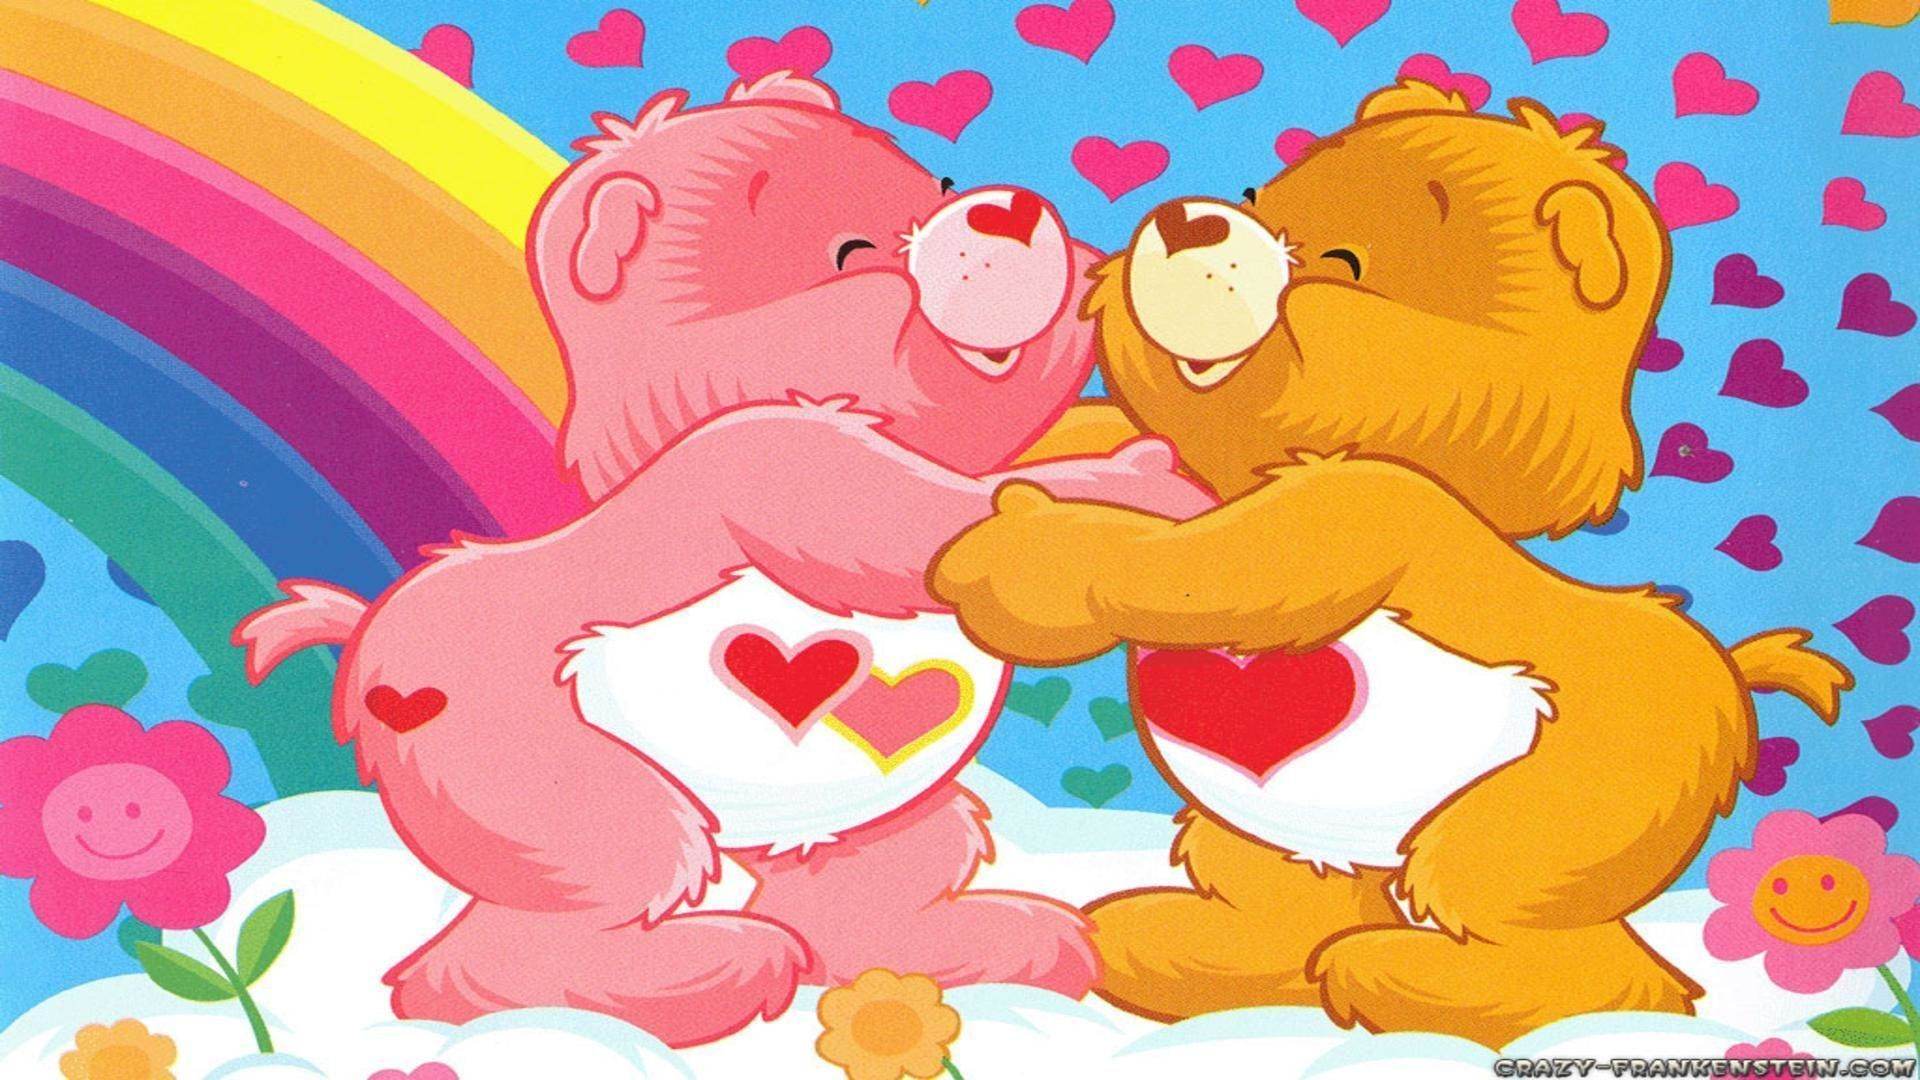 1920x1080 Care bears love wallpapers free desktop background - free .